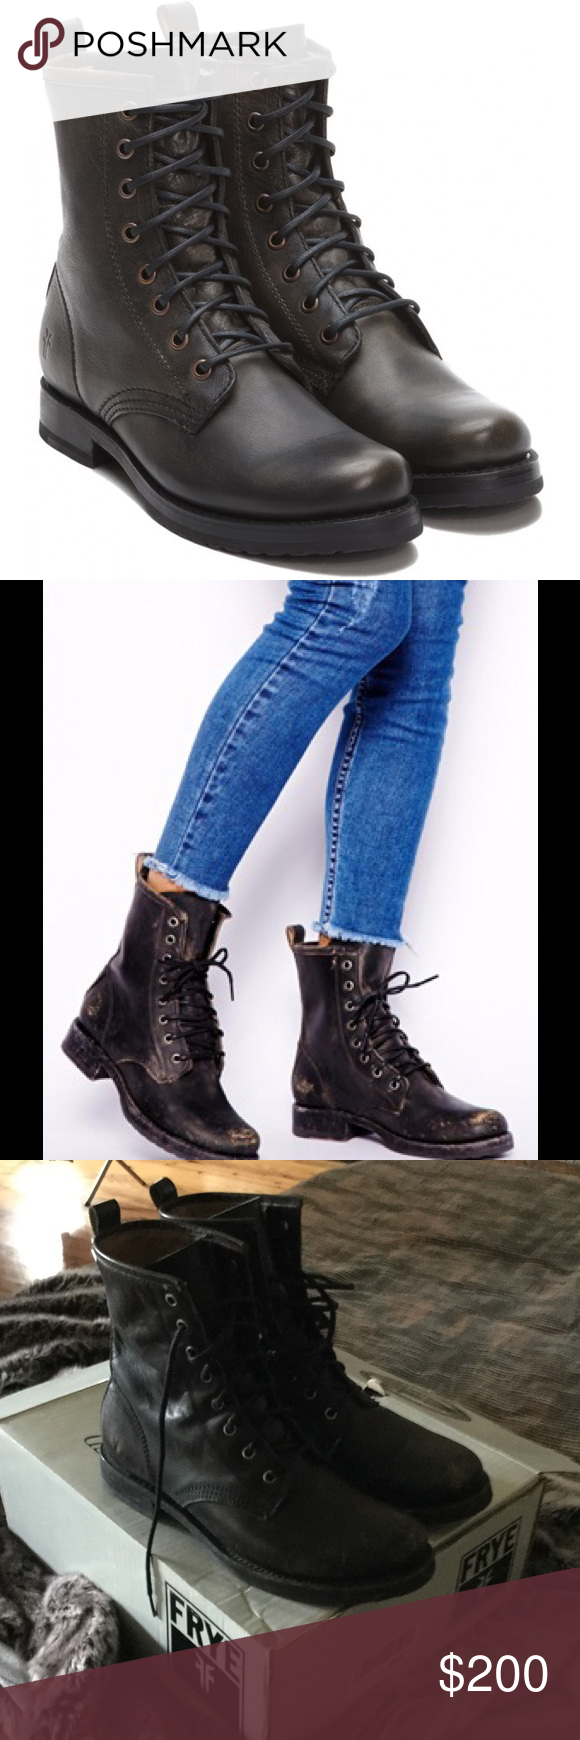 71cd42ef0 Frye Veronica Combat Boots All leather Frye Veronica Combat boots in black  stonewashed. Distressed look